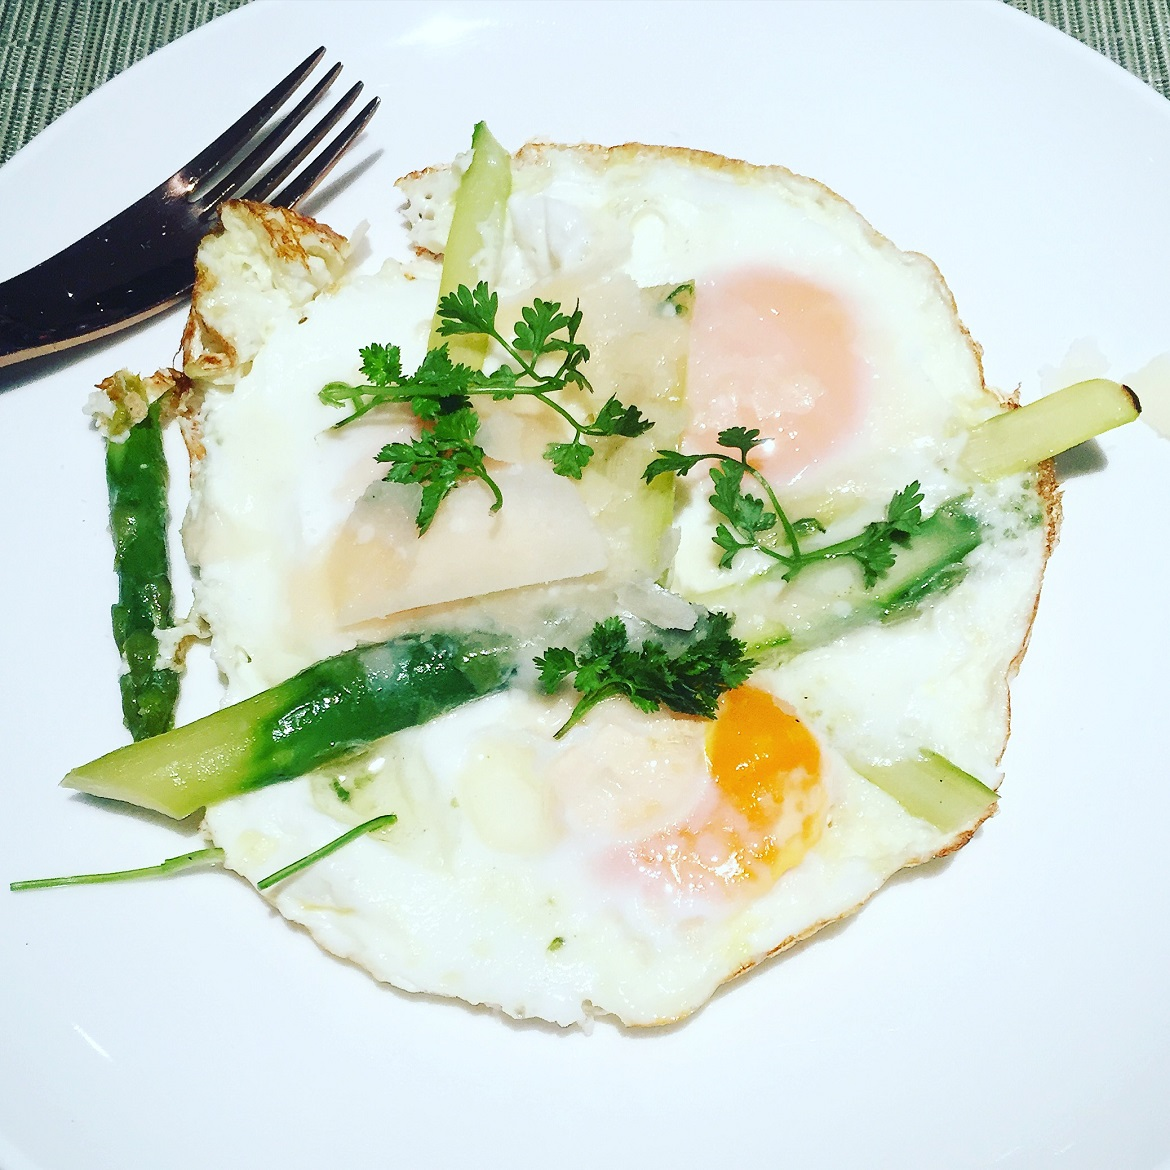 Sunny side up eggs with asparagus & truffle oil. I had them without bread because of a stupid diet...